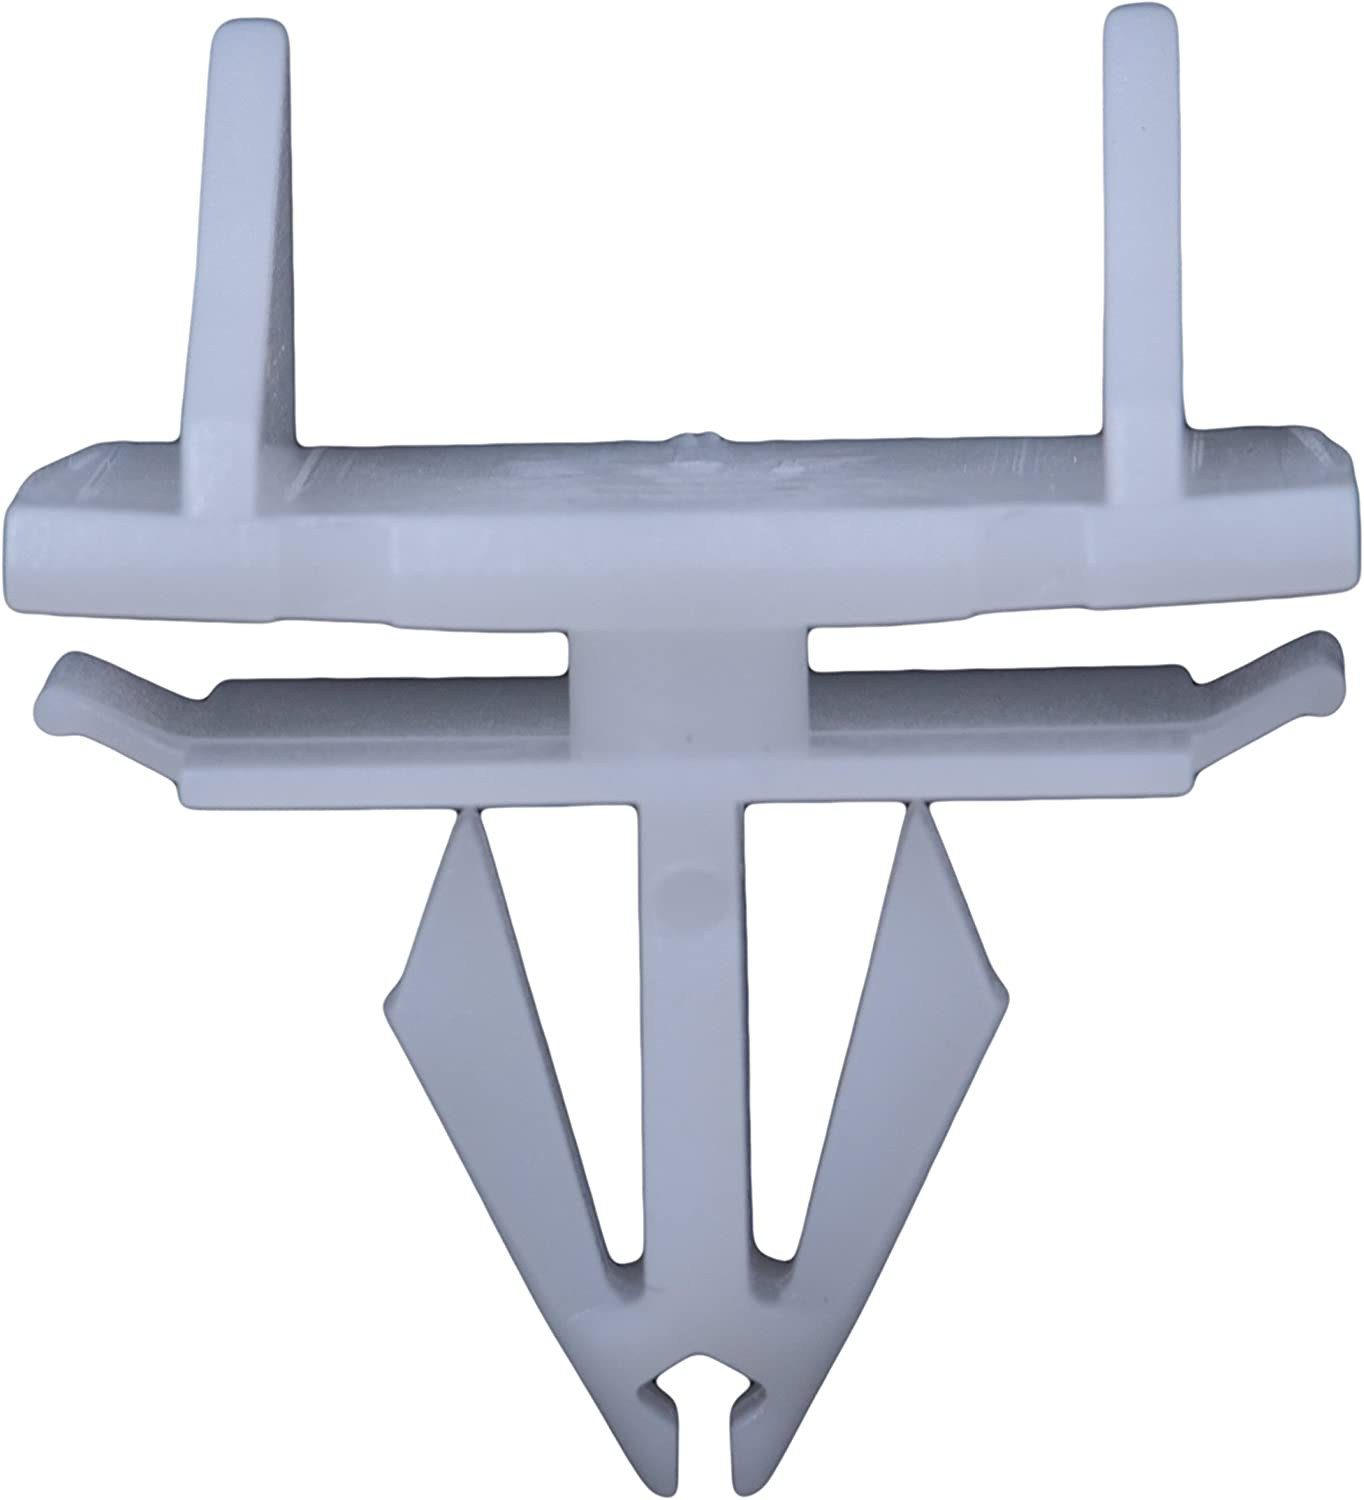 Clipsandfasteners Inc 10 Rocker Moulding Clips For 55157070-AC Jeep Liberty